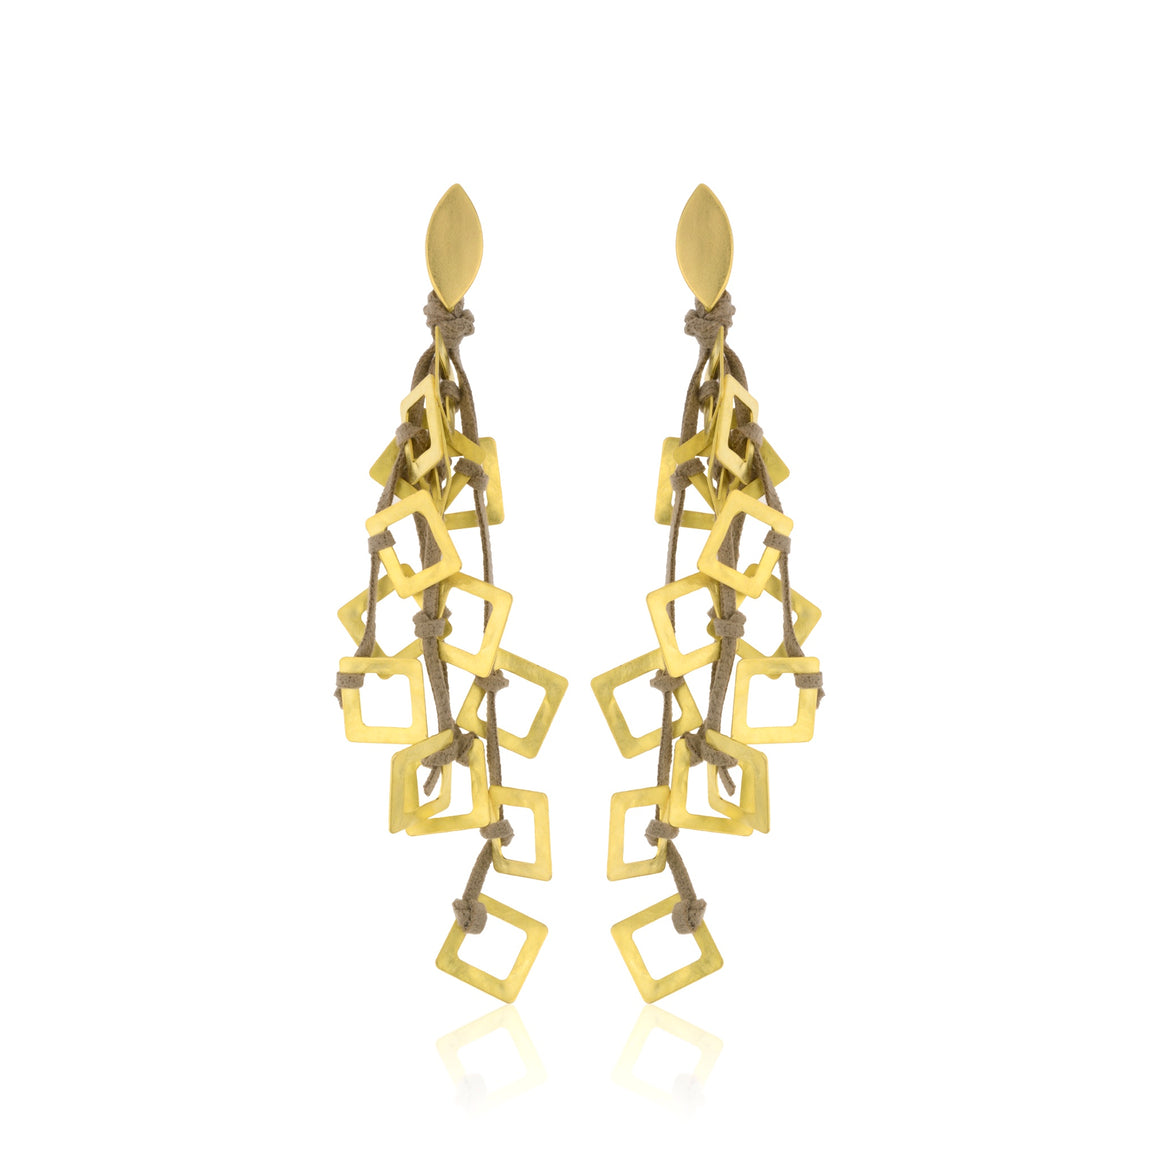 The Suspended Squares Earring